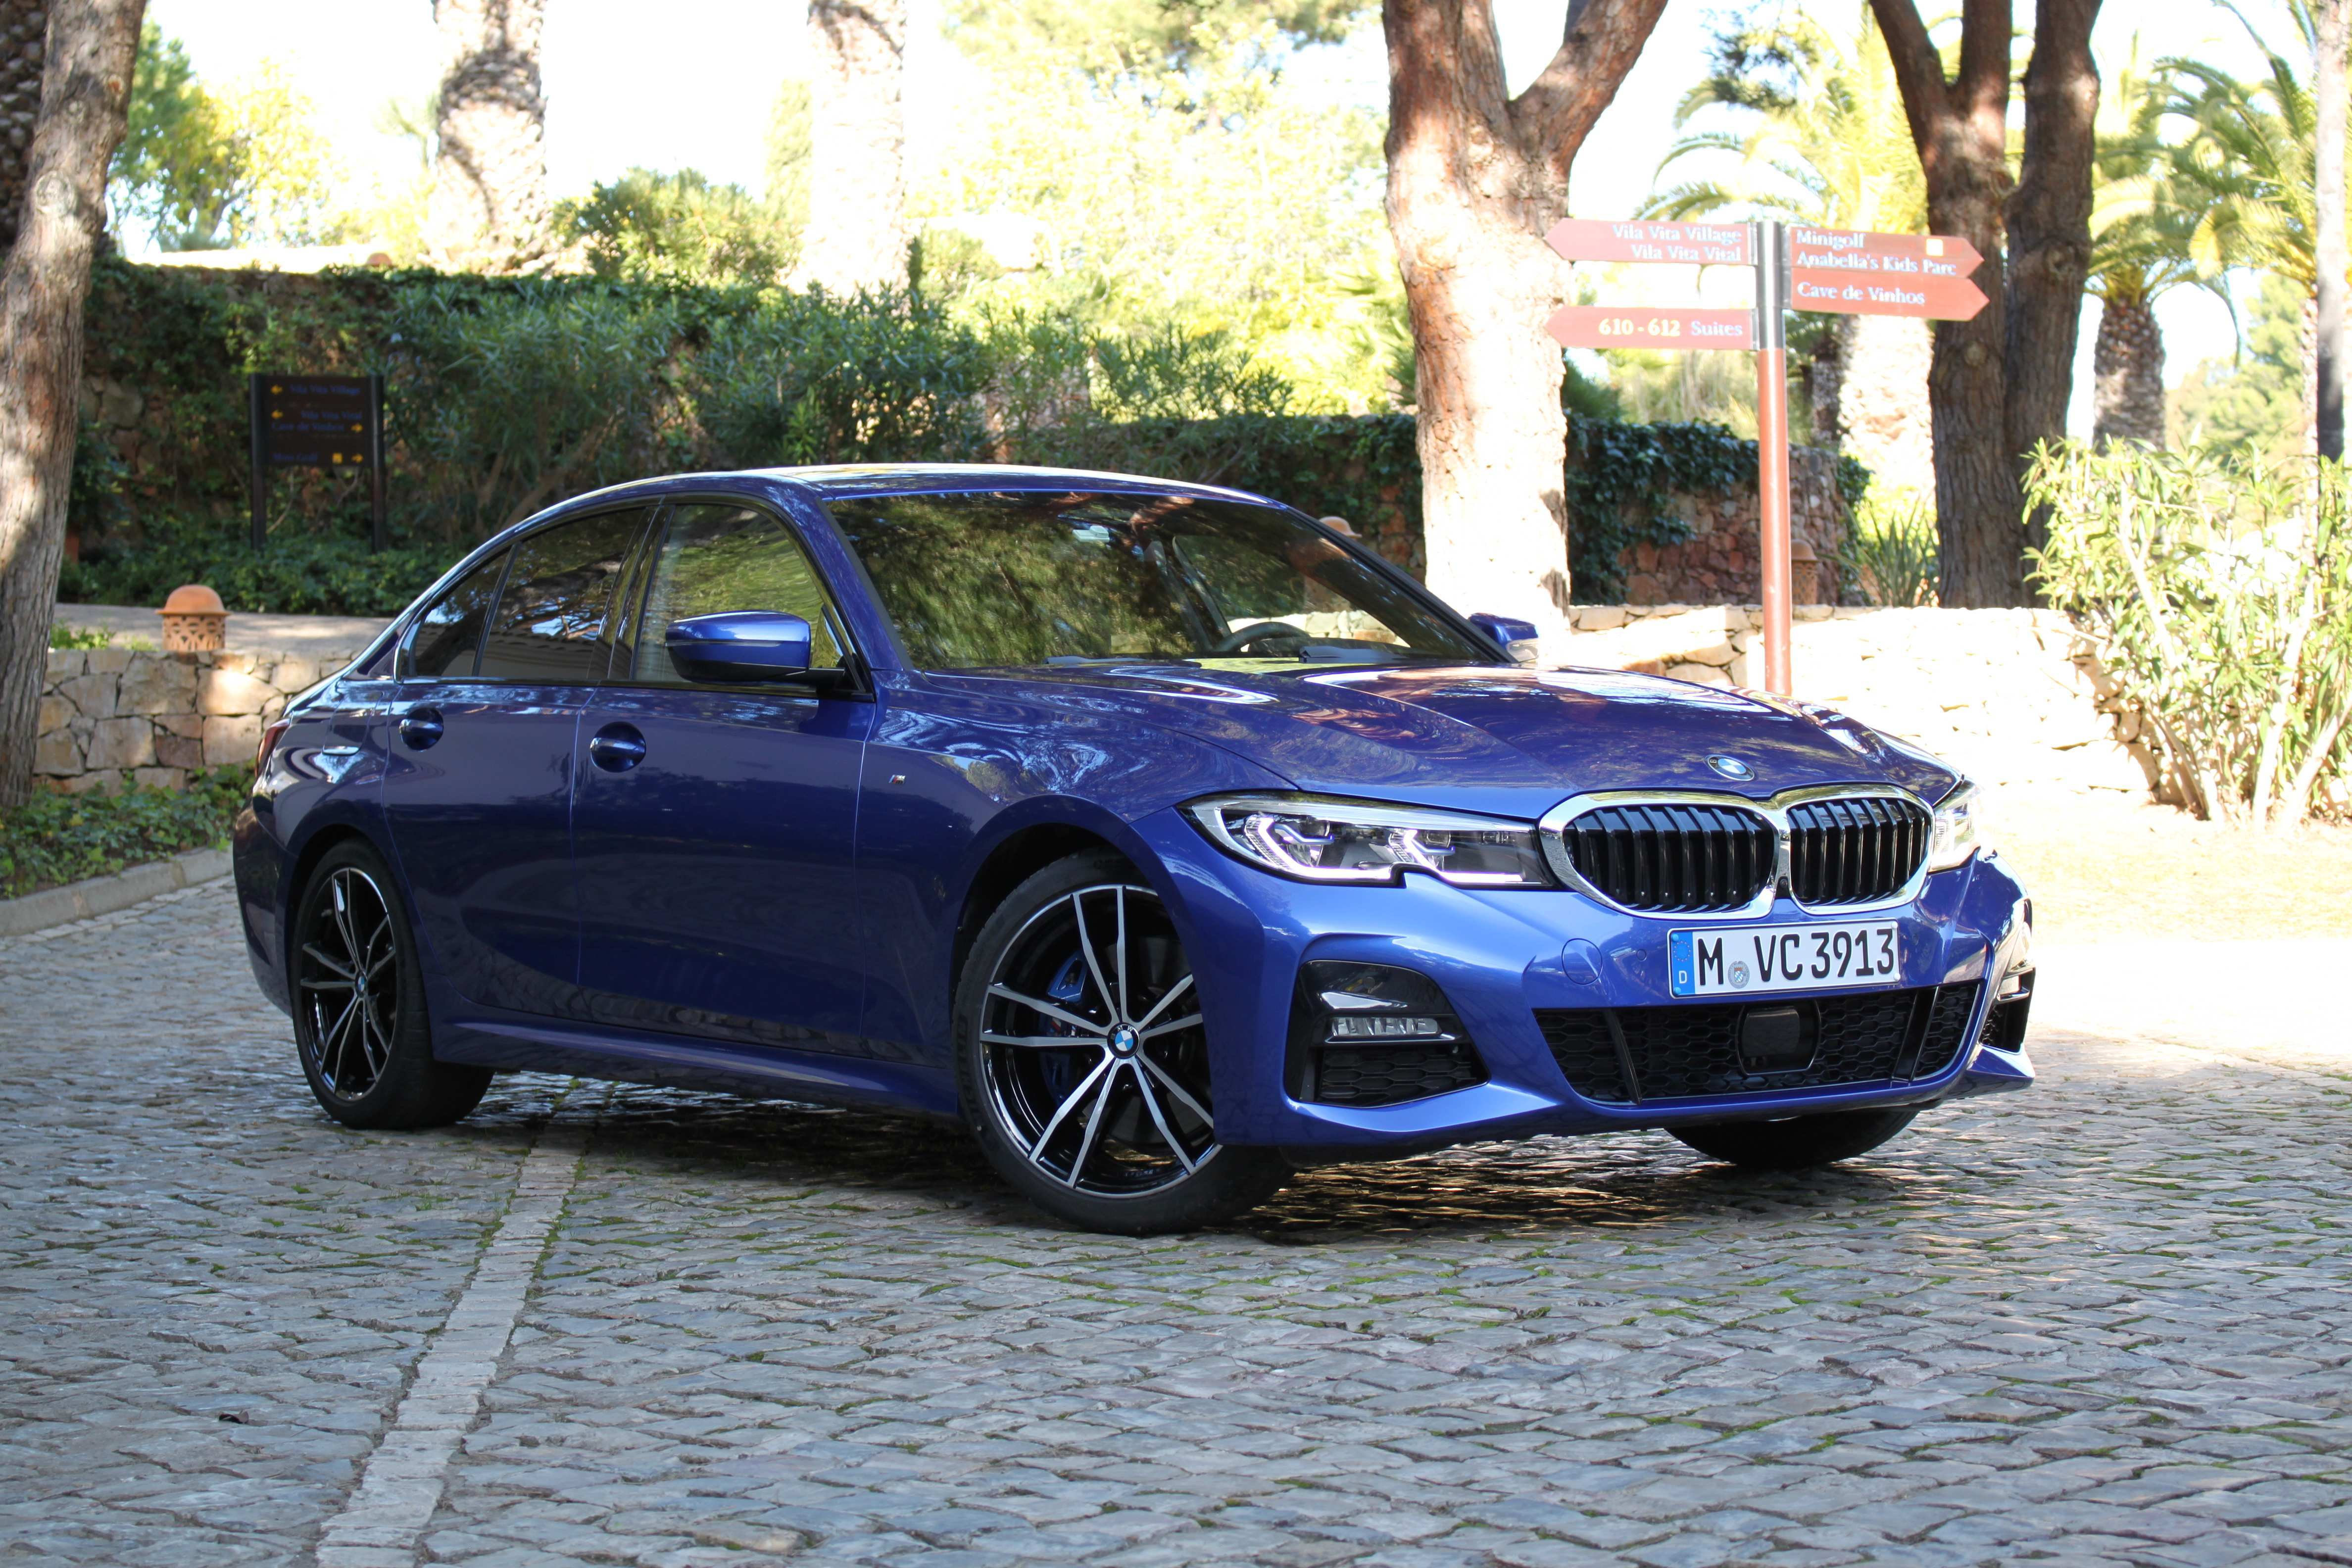 49 All New Bmw 3 2020 New Concept